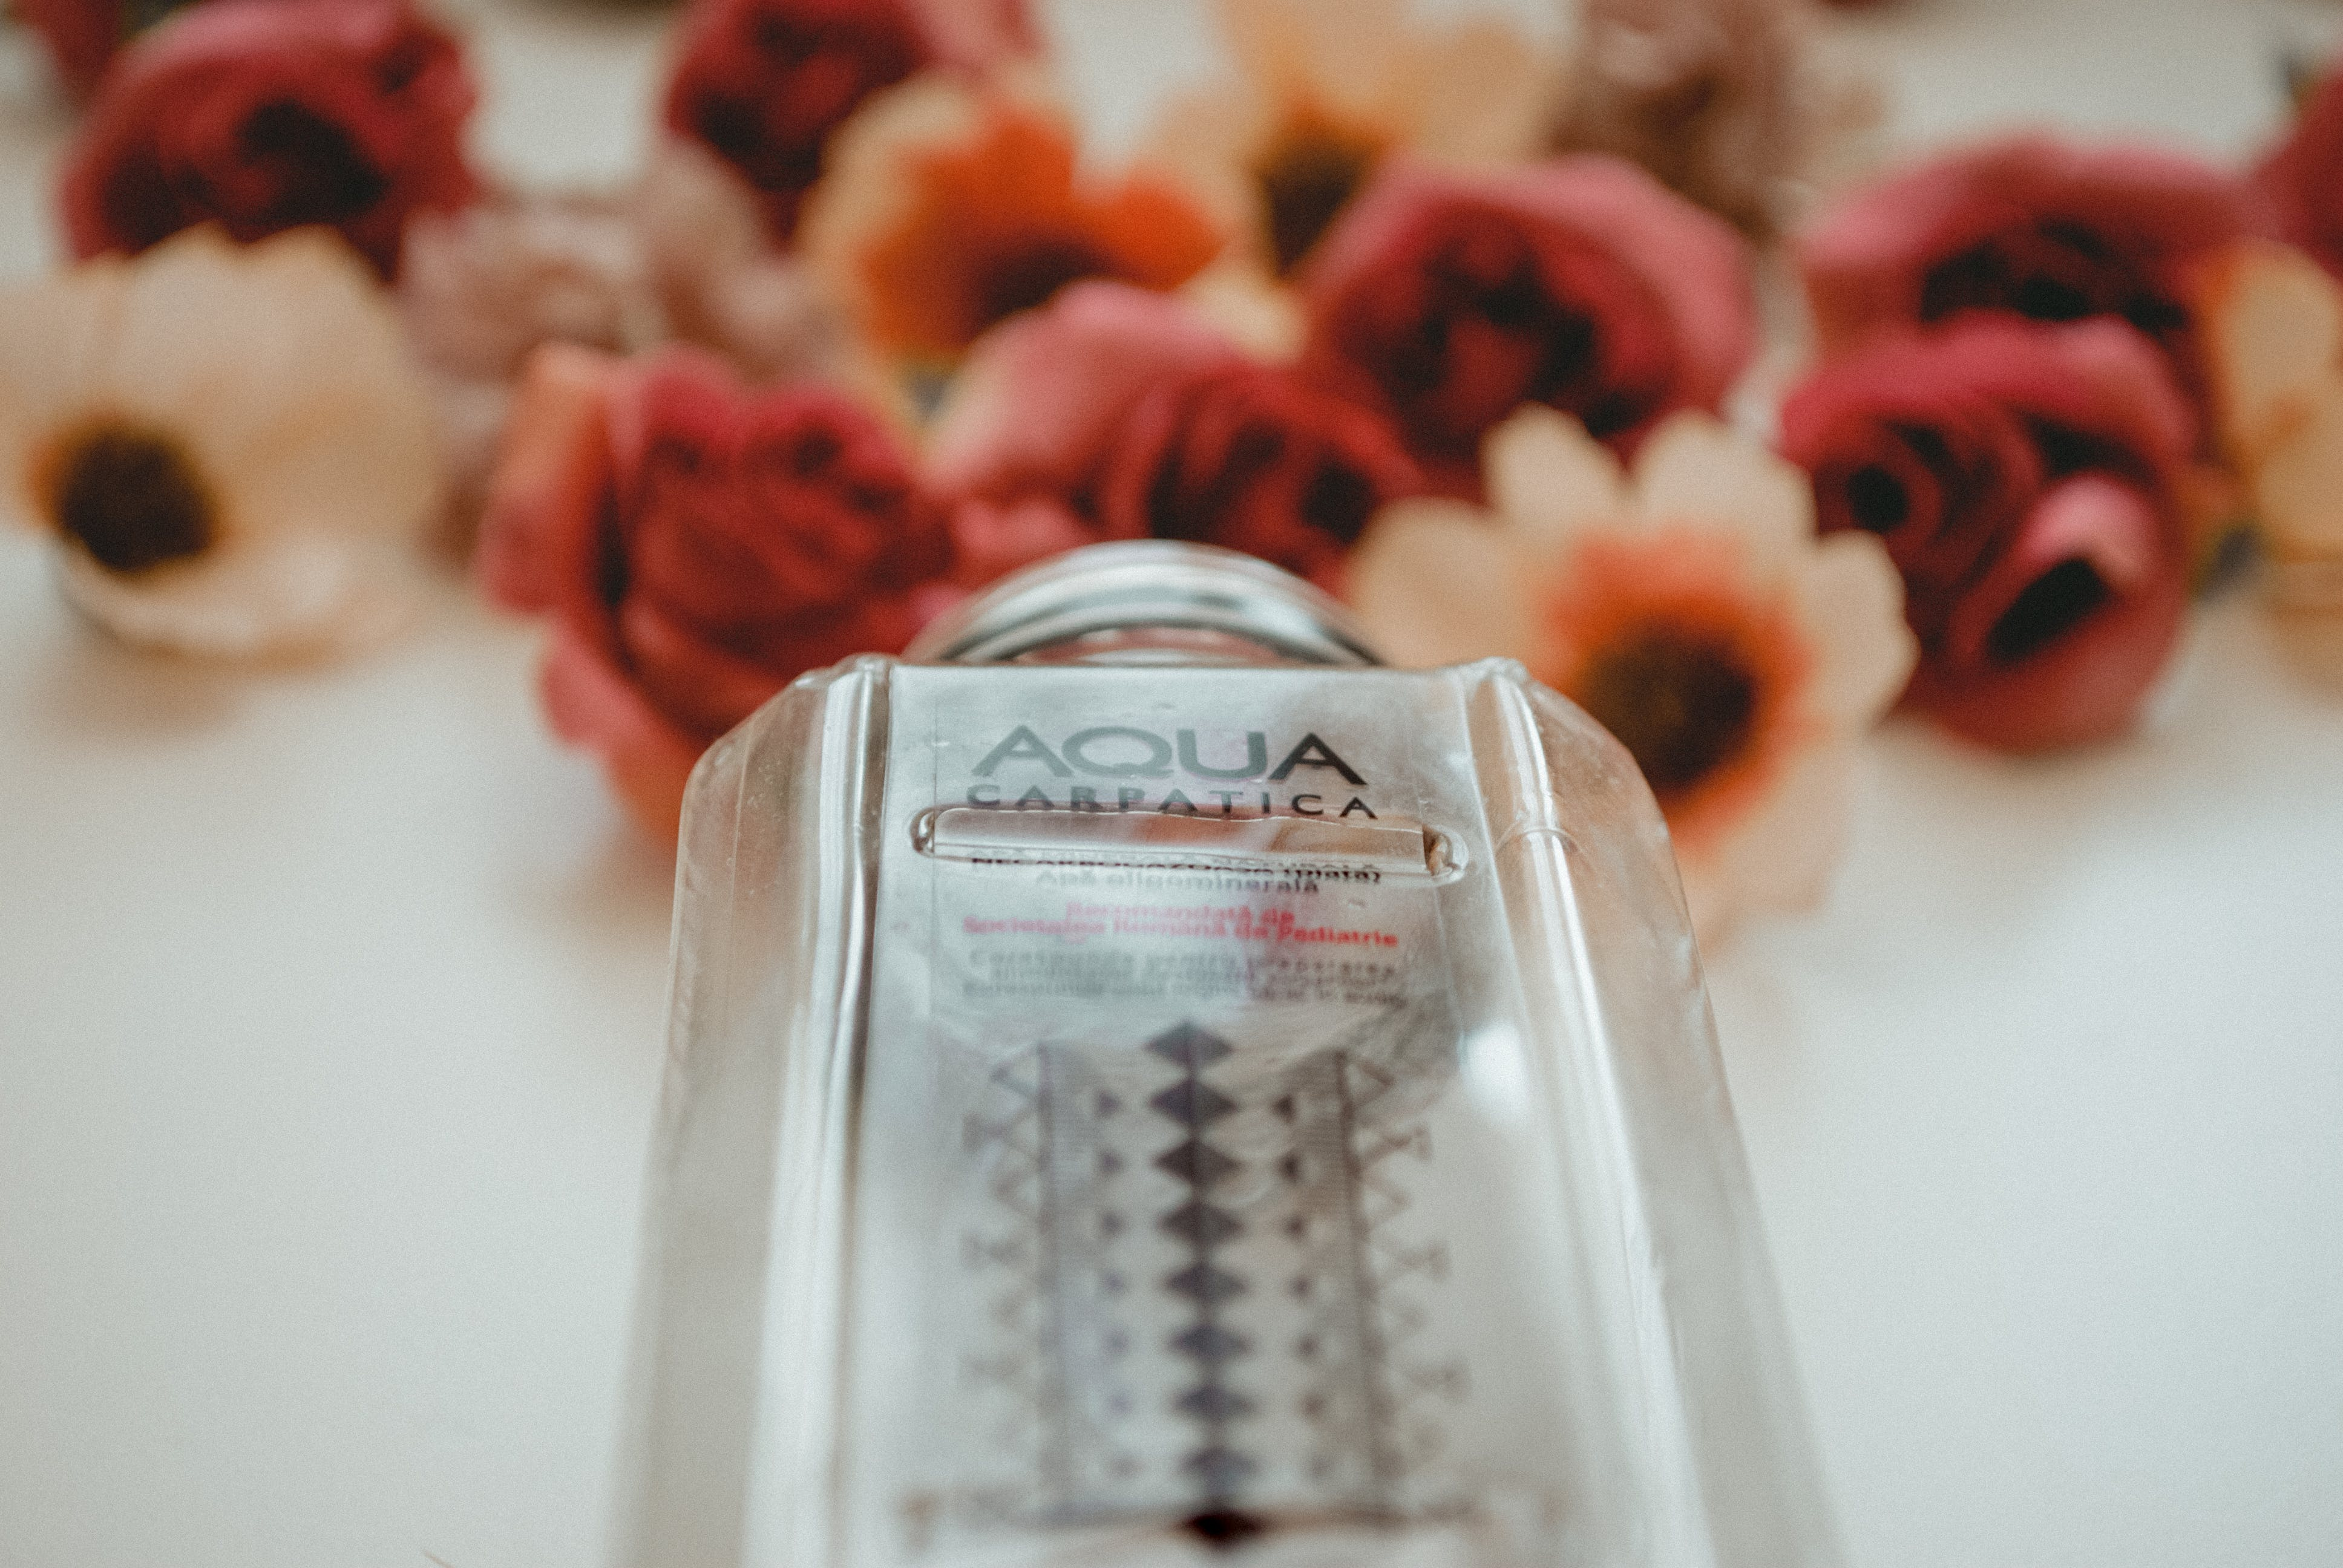 Aqua Carpalica Bottle Near Flowers on White Surface